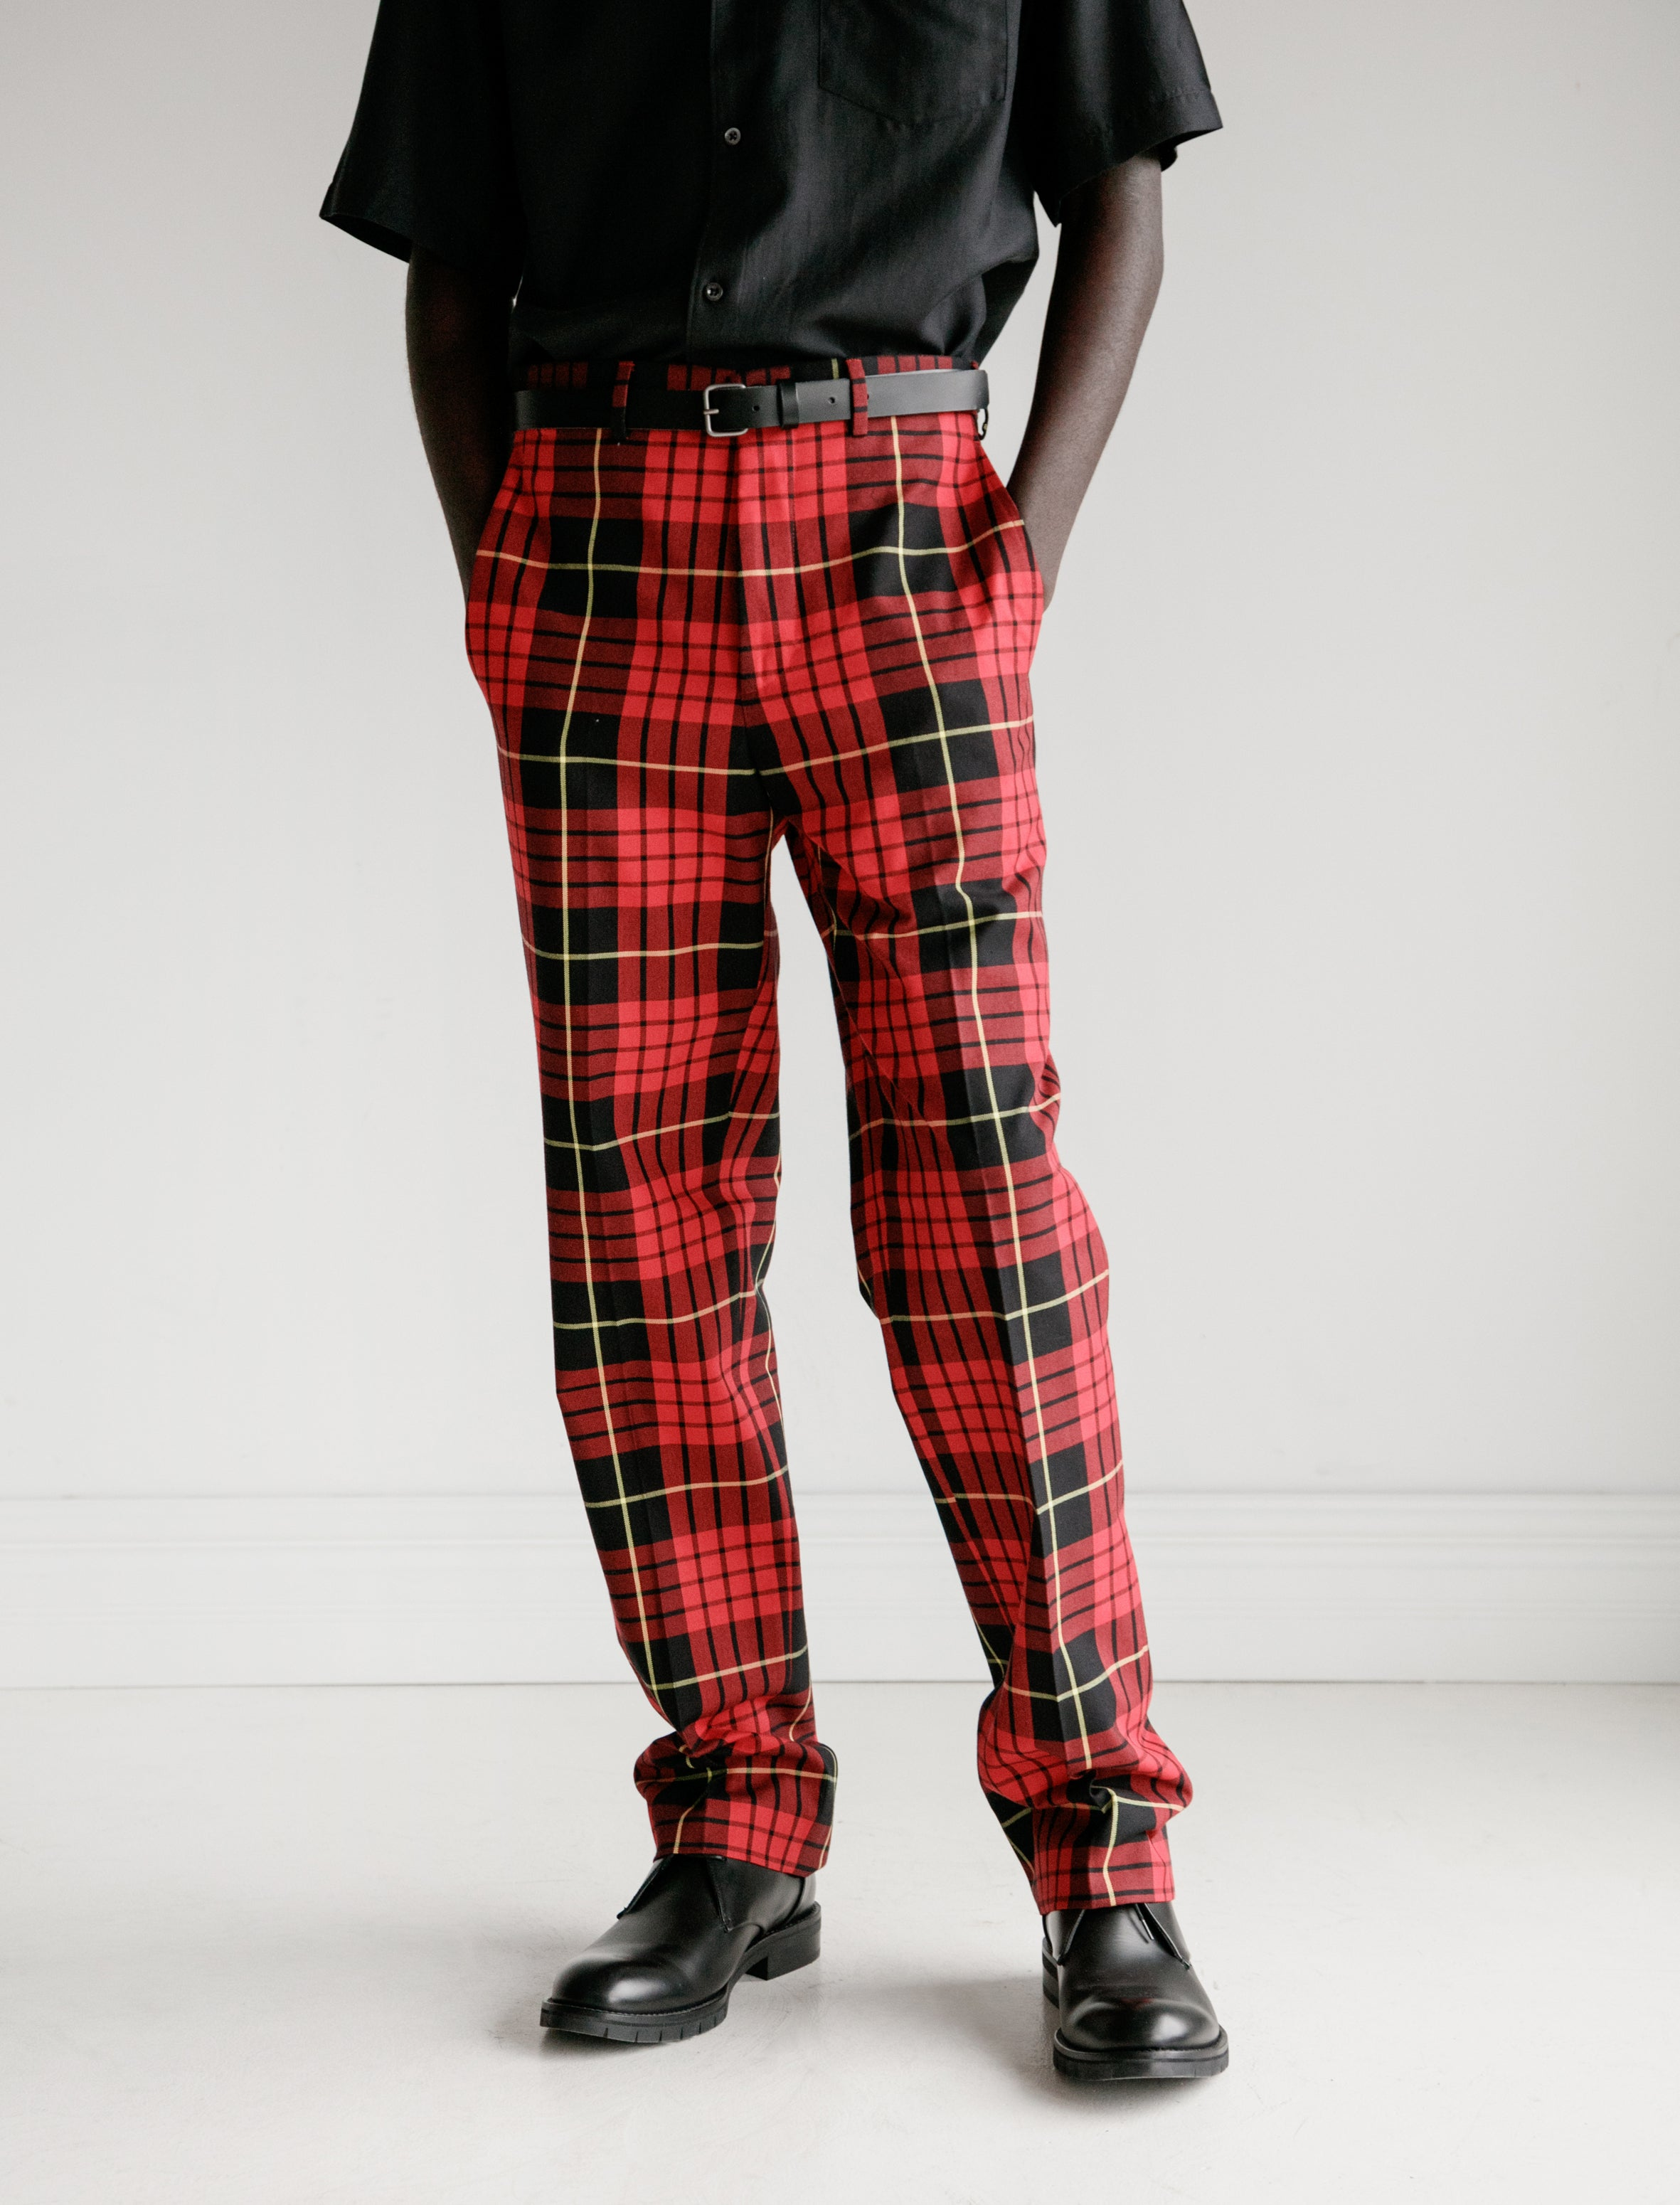 Cobra S.C. Classics Trouser Cotton Twill Red/Black Plaid